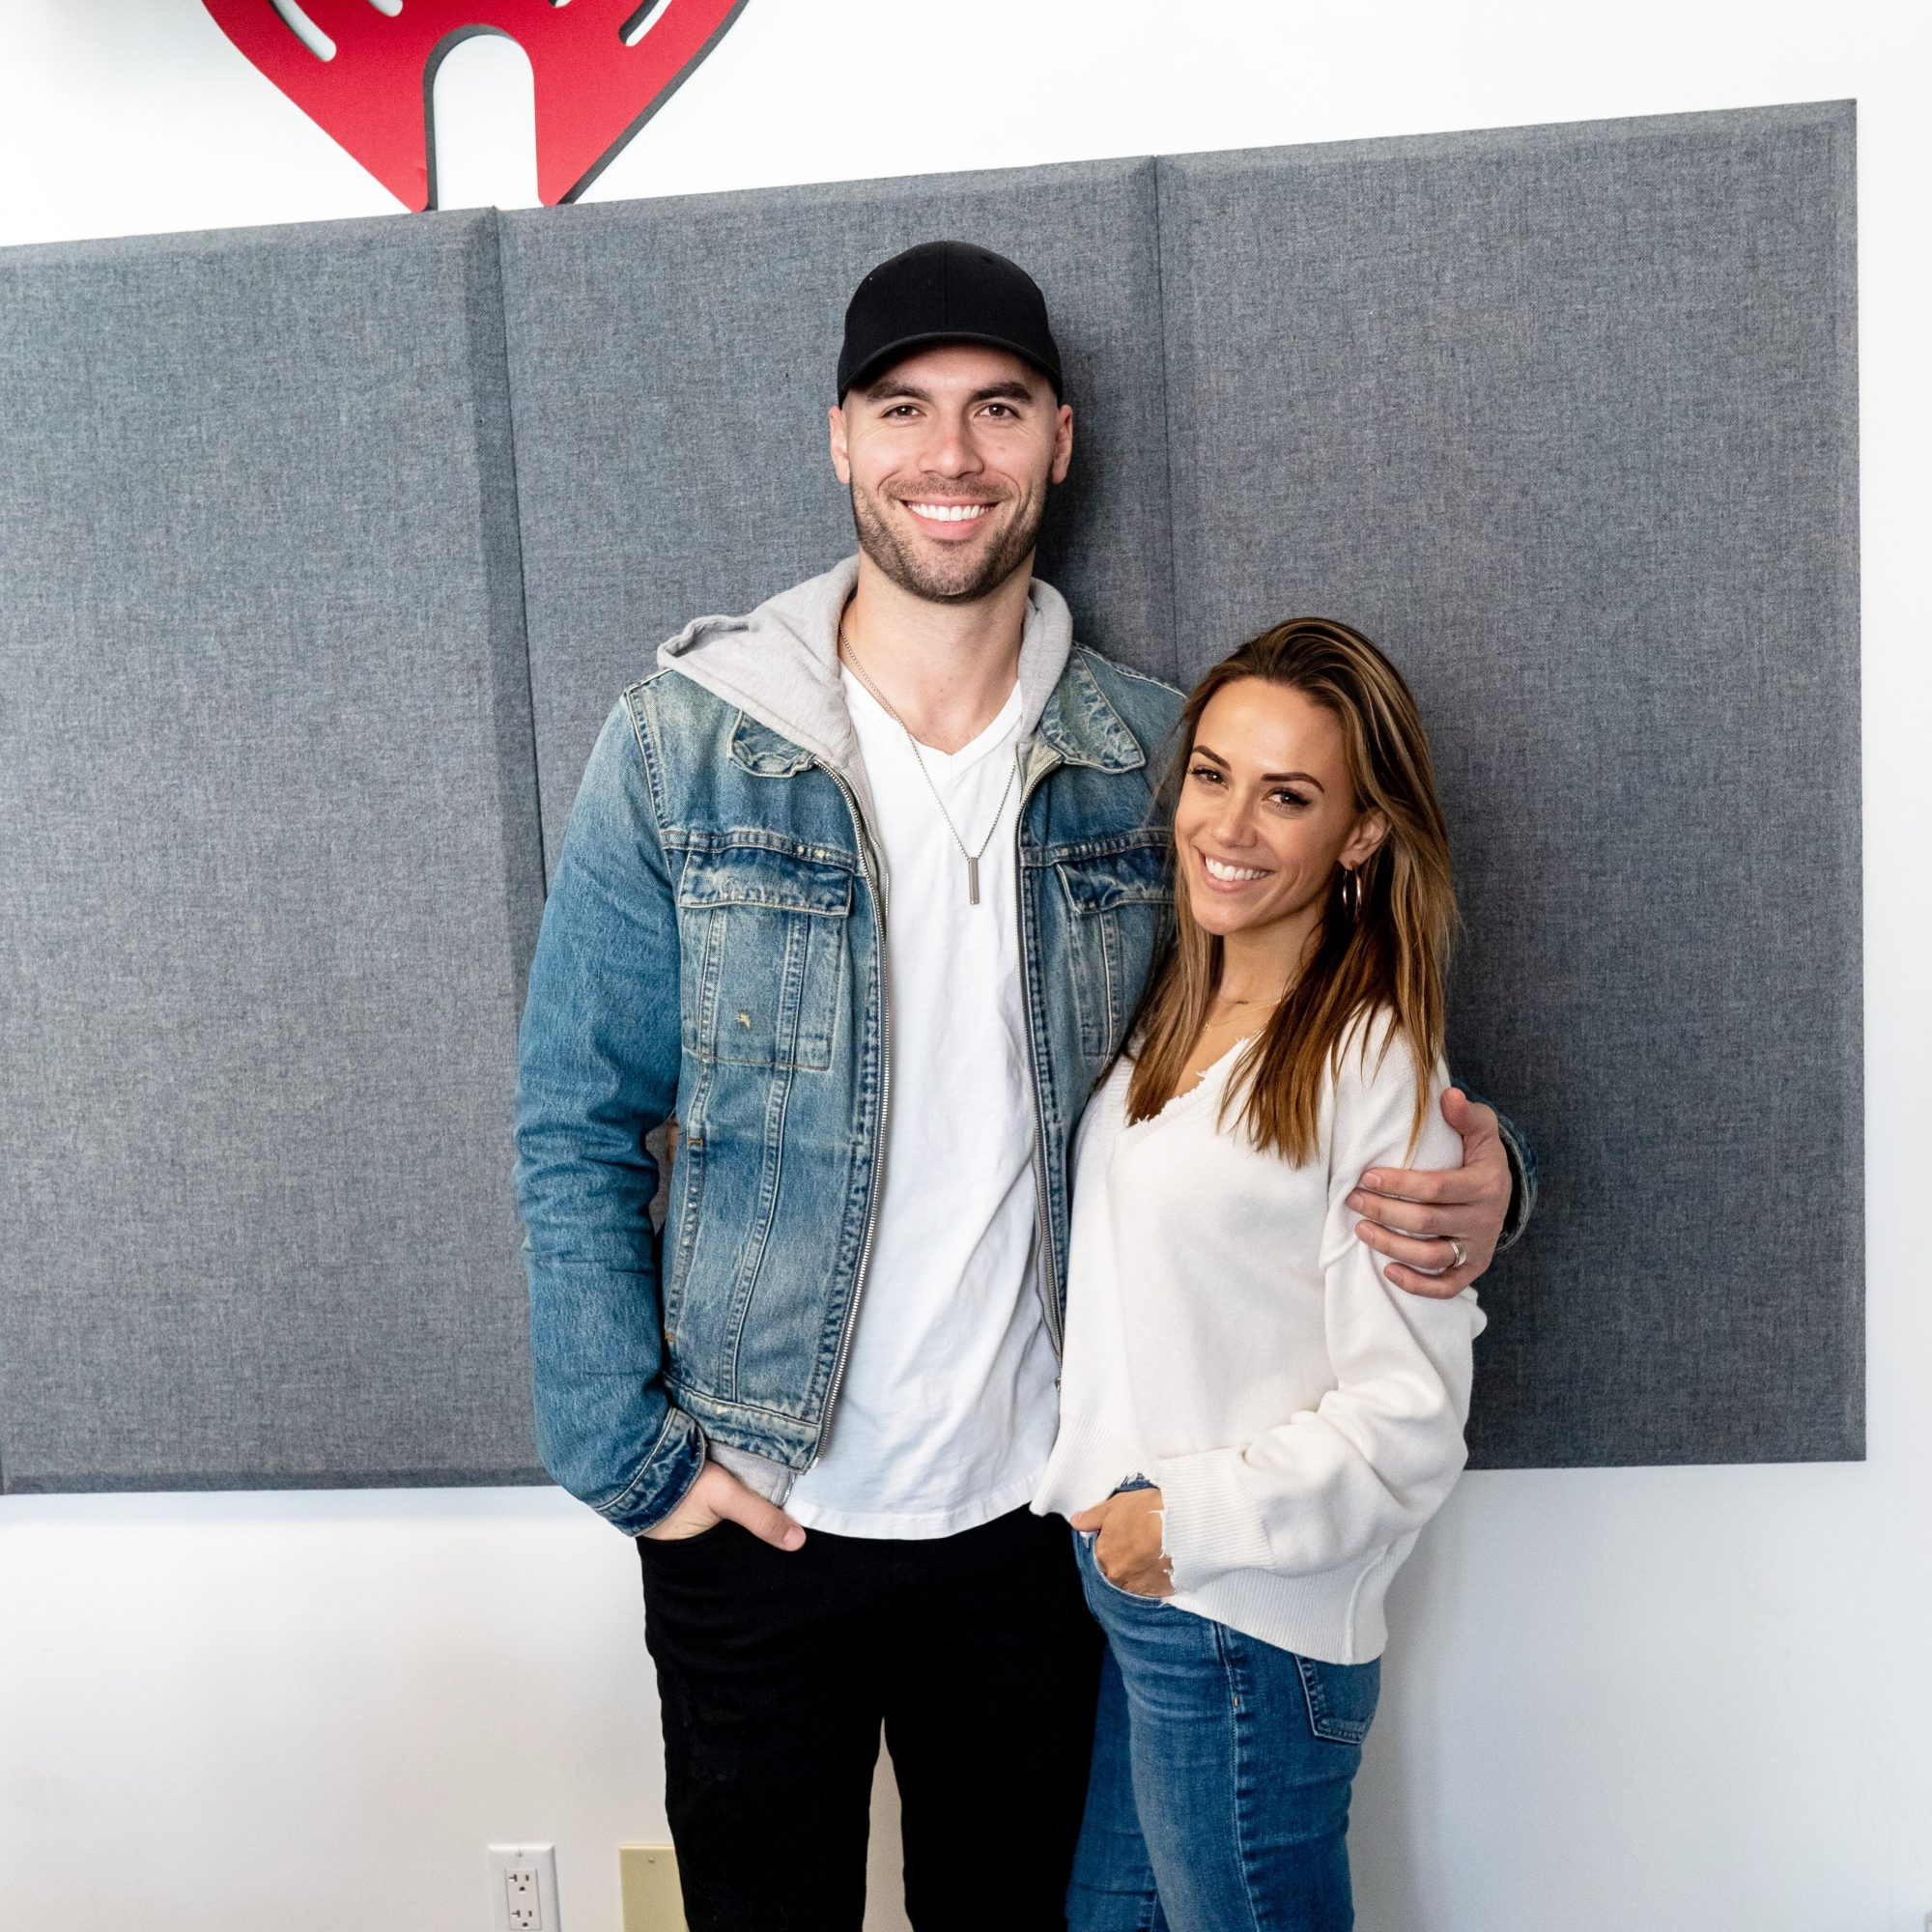 Jana Kramer Reveals She Had to Go on Stage and Perform Right After Finding Out Her Husband Cheated